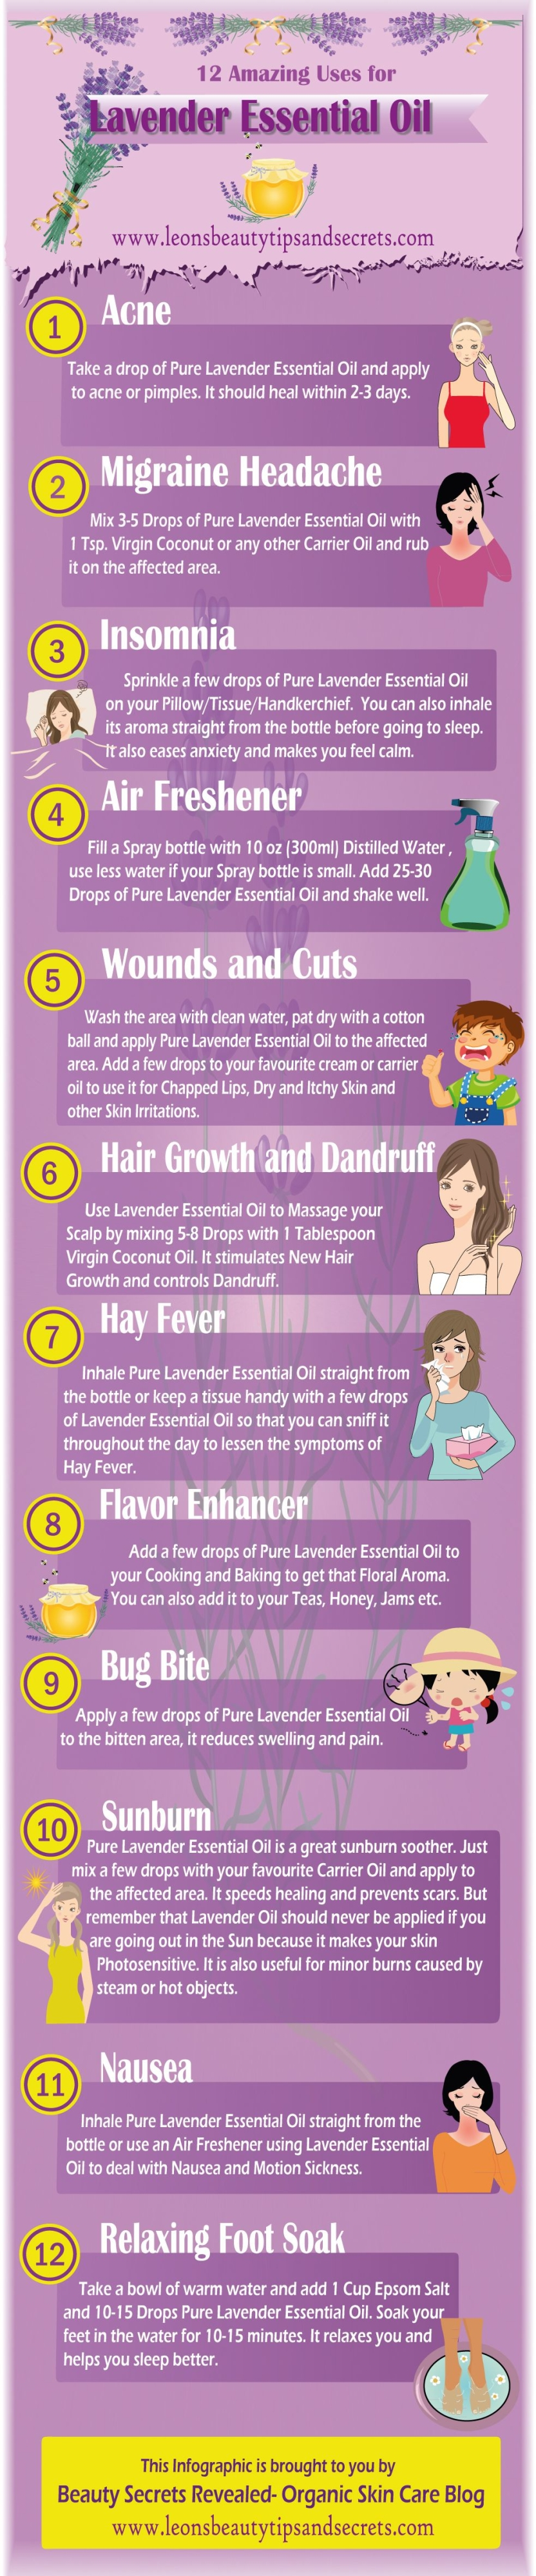 12 Amazing Uses For Lavender Essential Oil Infographic